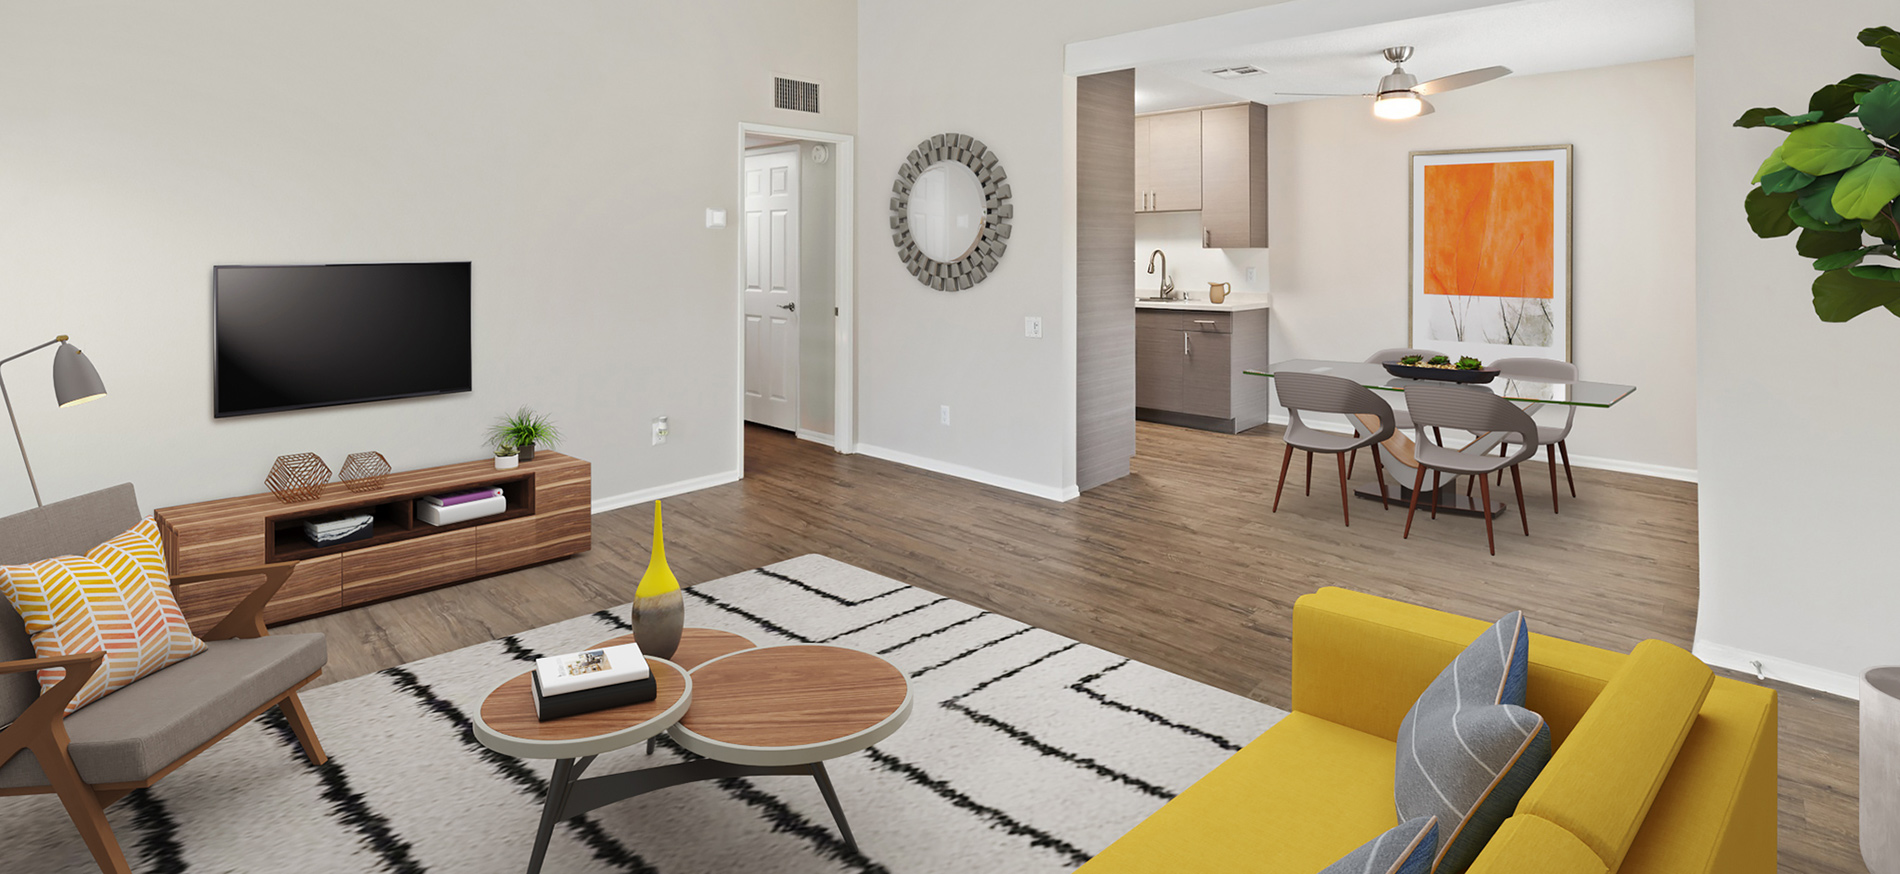 Apartments And Pricing For 27 Seventy Five Mesa Verde Orange County